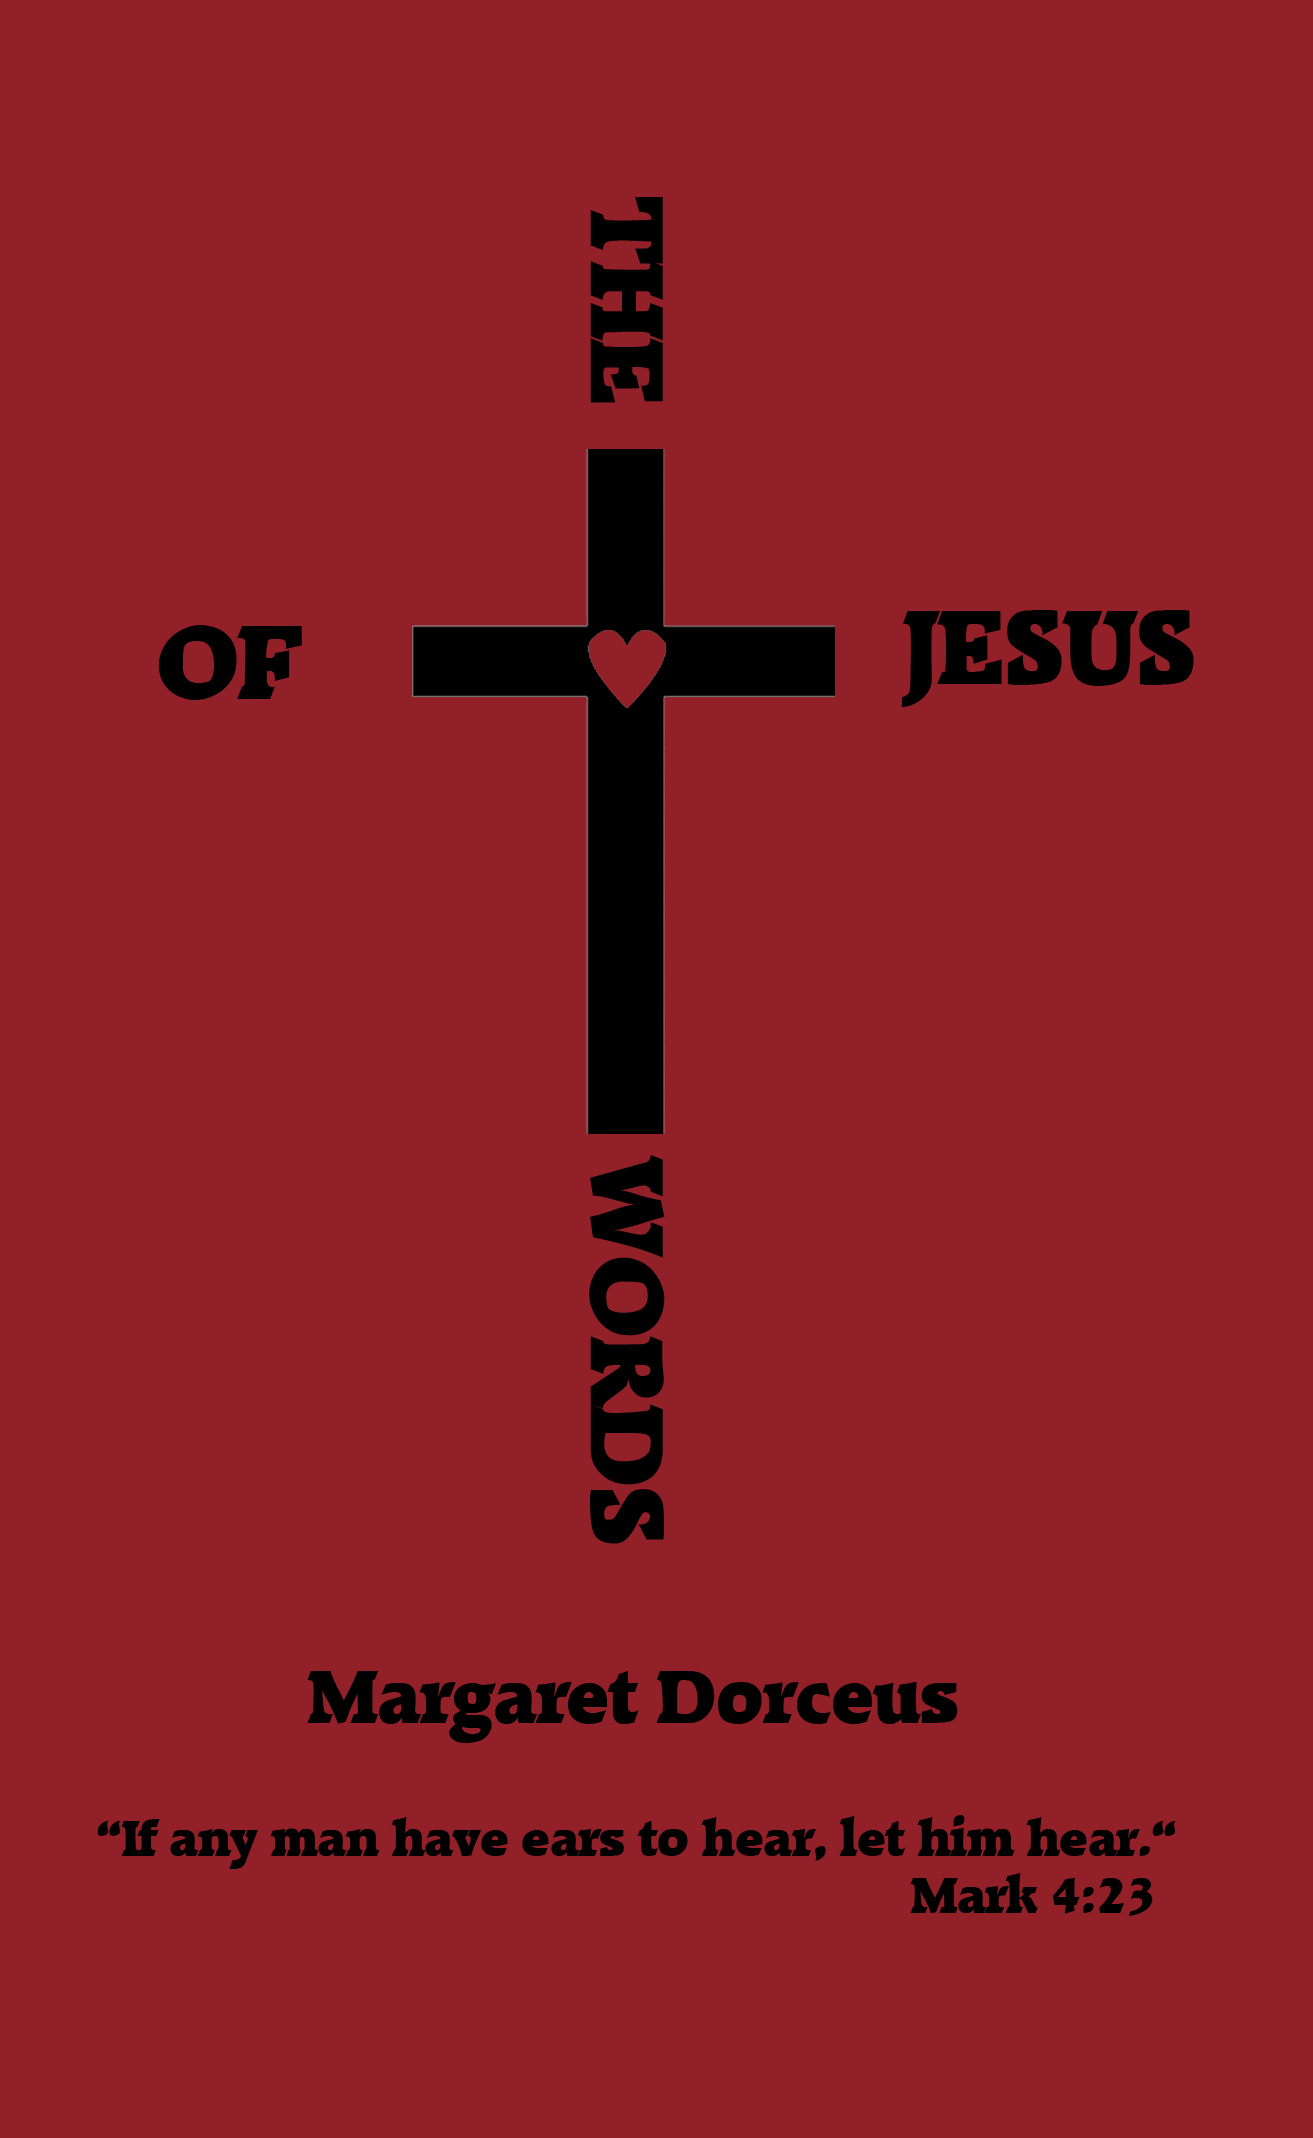 Jesus' words by Margaret